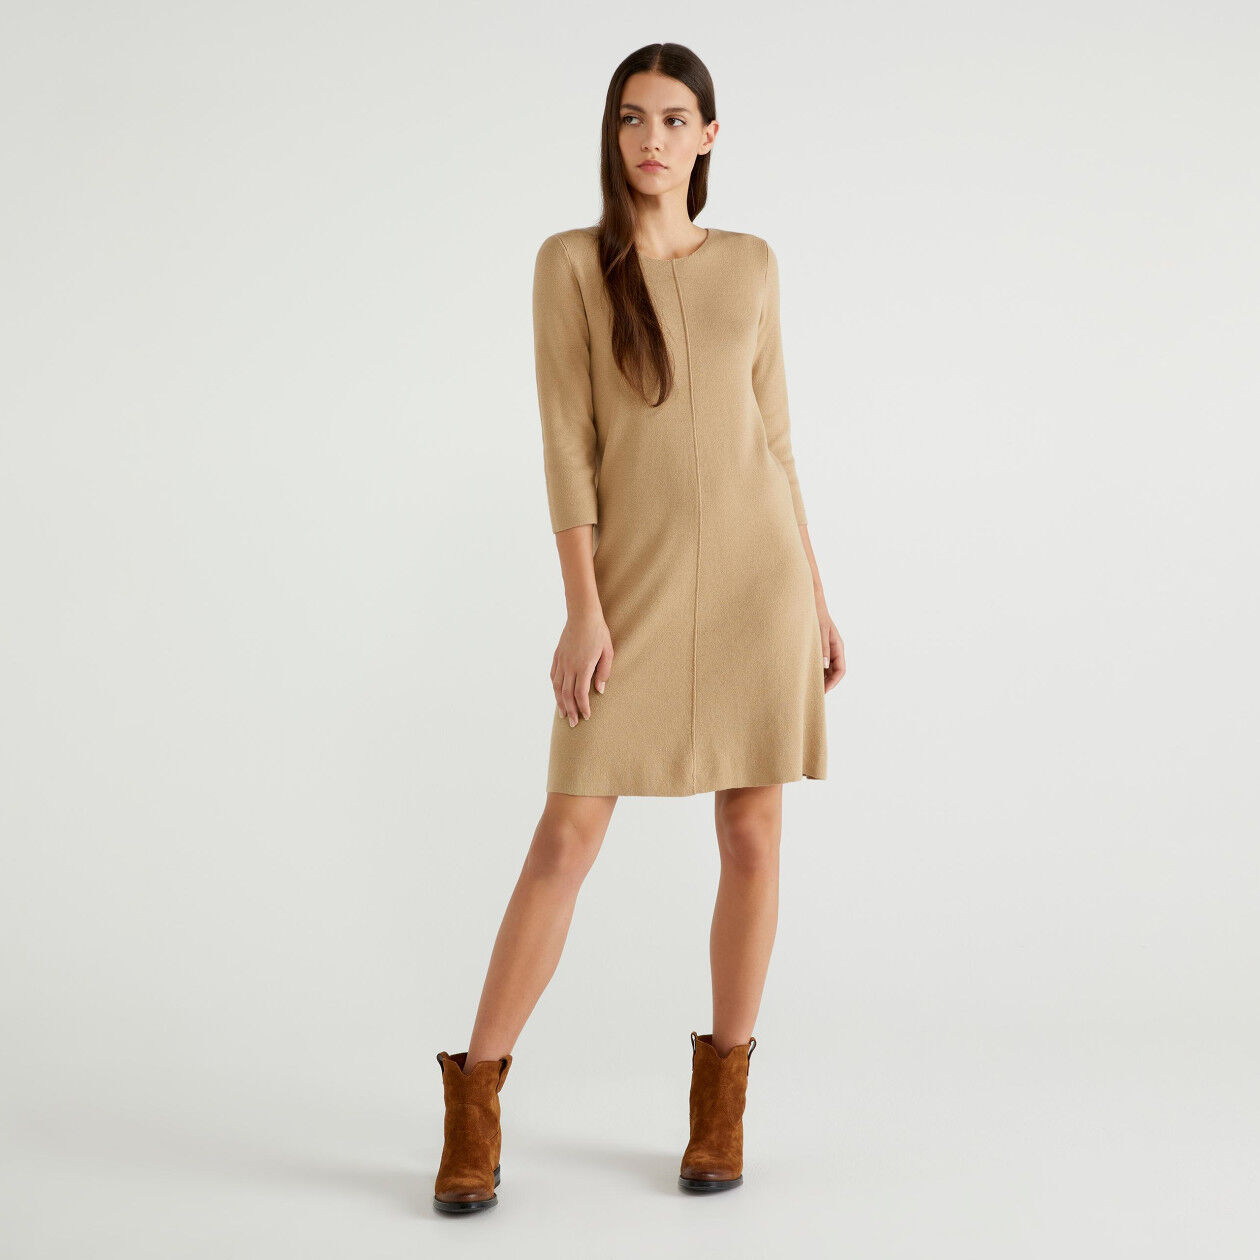 3/4 sleeve knit dress